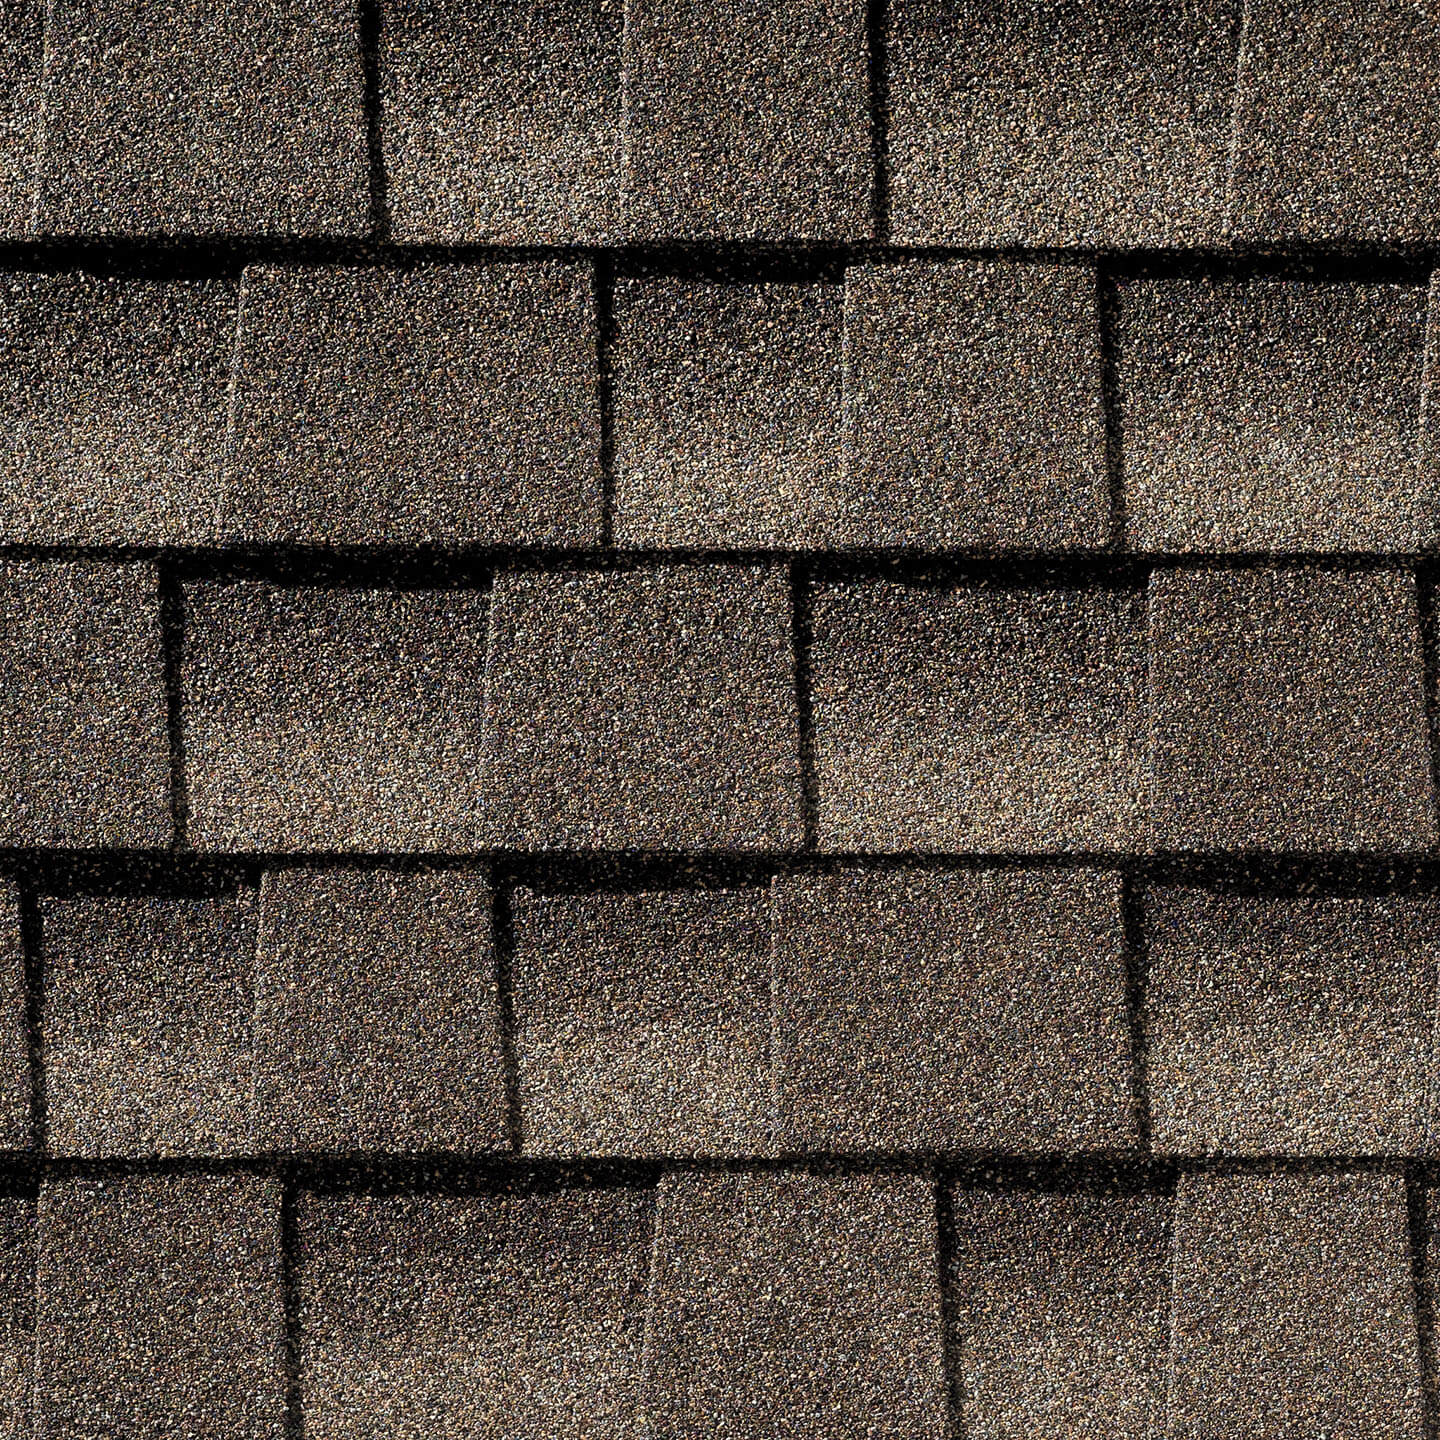 Timberline Mission Brown shingle sample